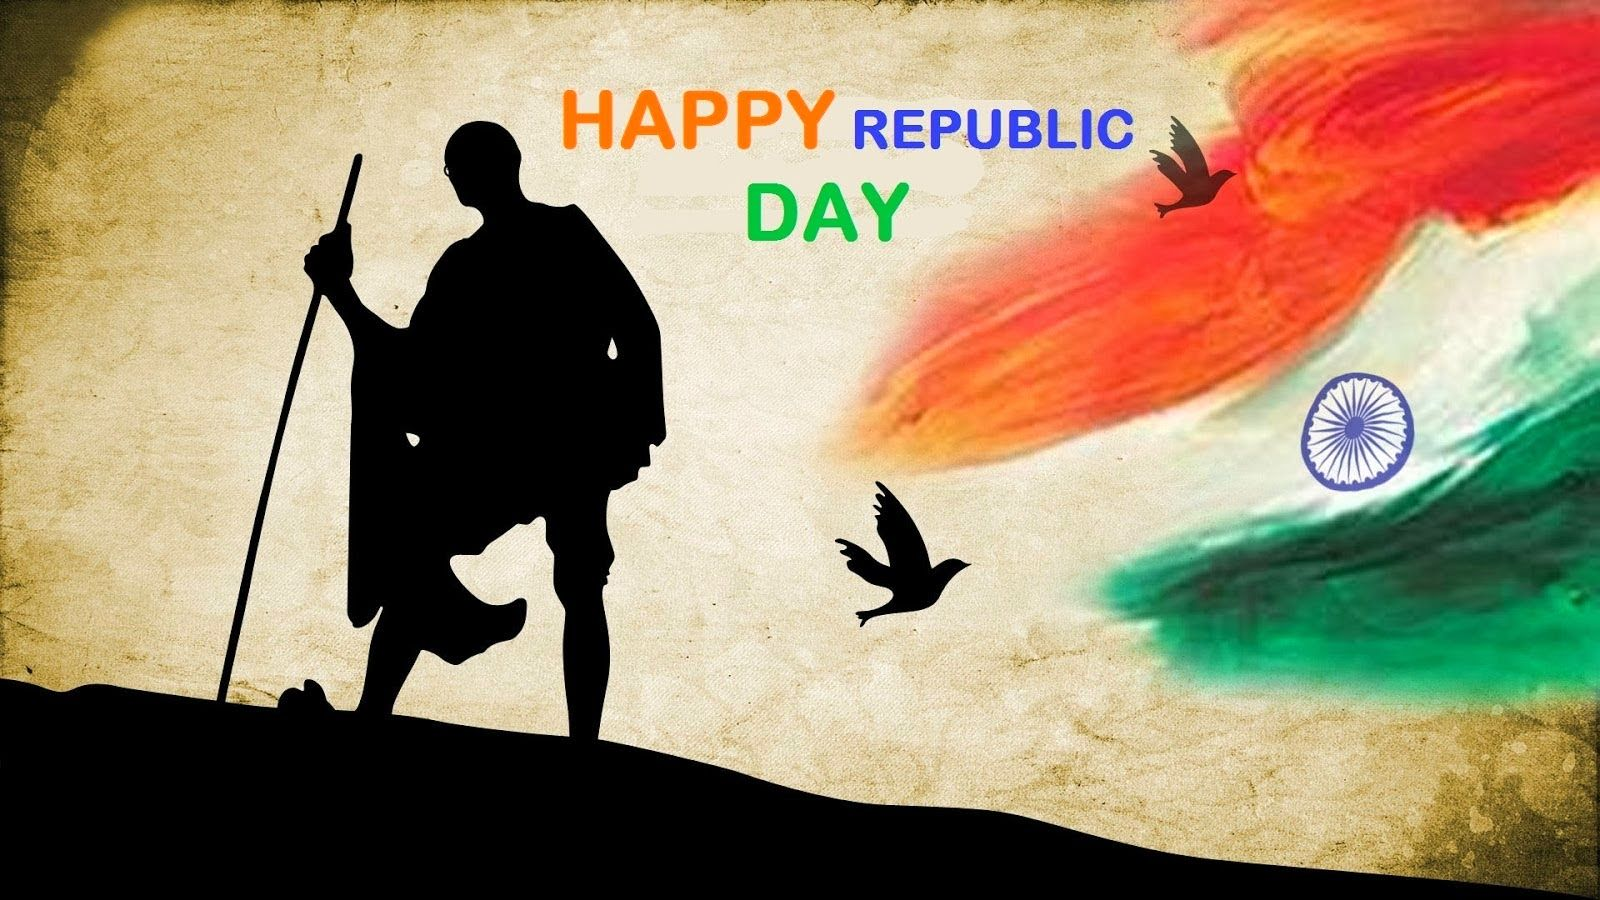 Brainy Quotes On Republic Day Quotes Quotes On Republic Day Independence Day Images Independence Day Wallpaper